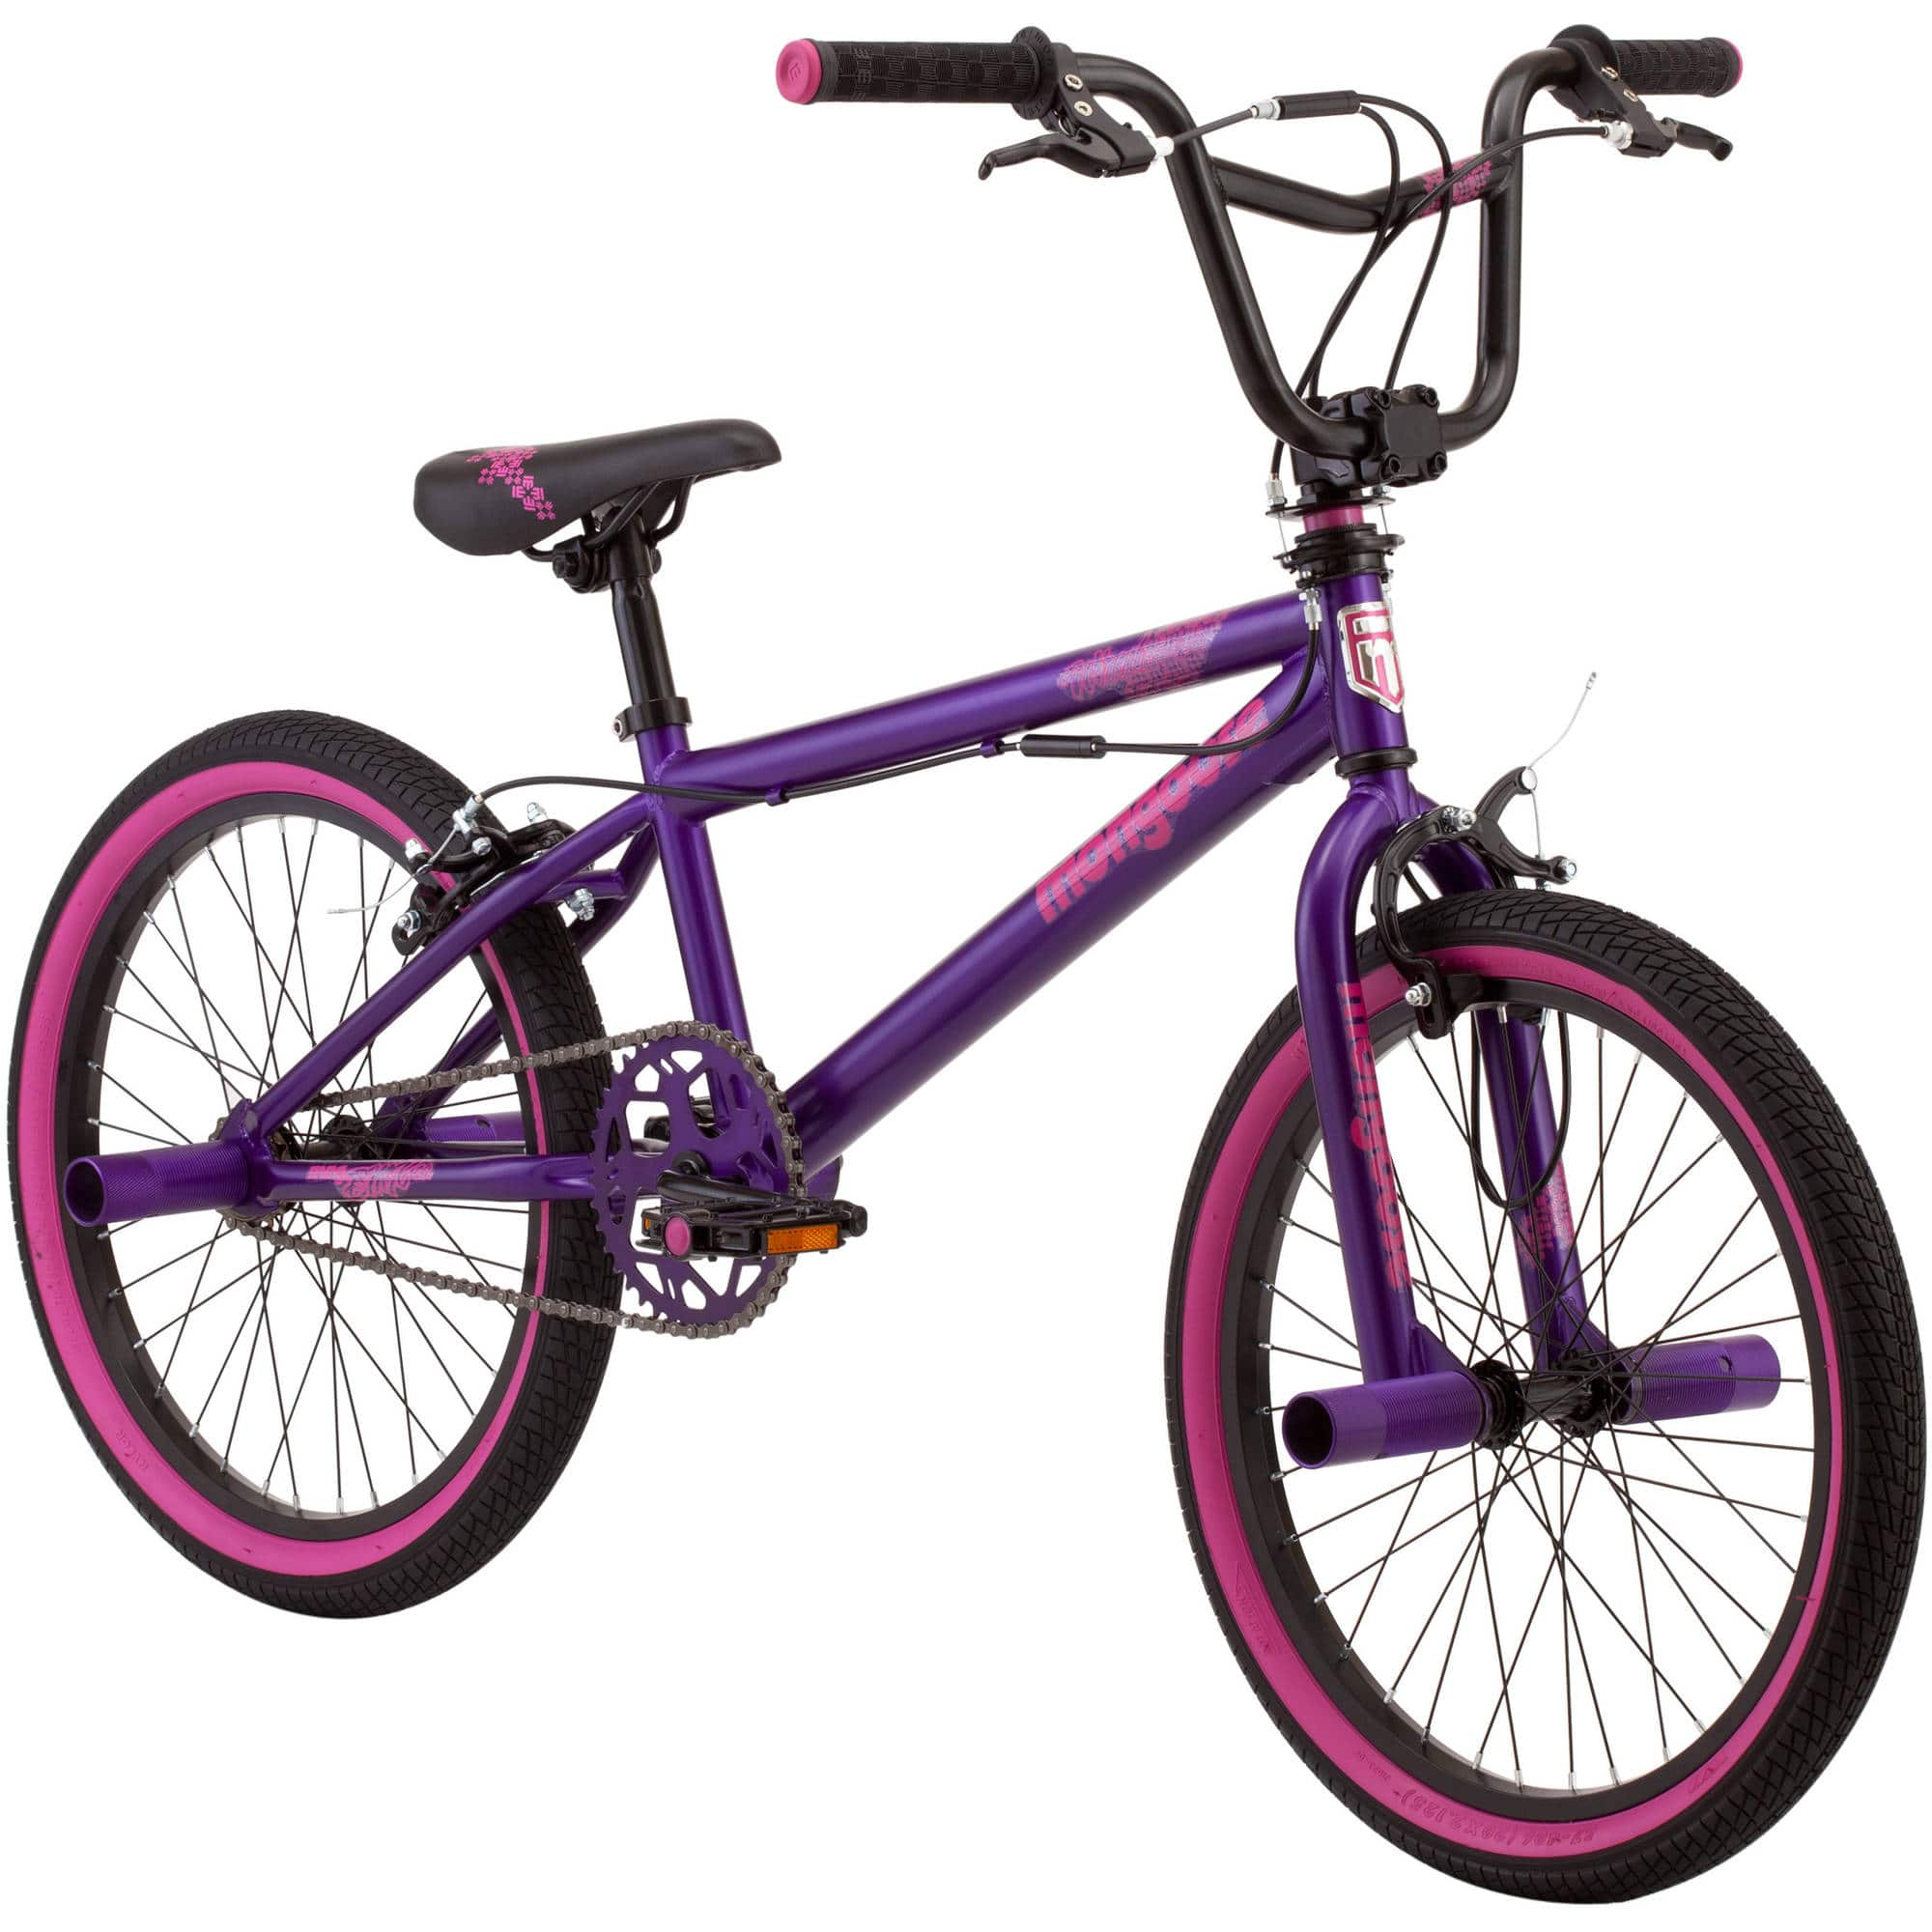 3 different 20 mongoose girls bikes at 49 ymmv in store only 3 different 20 mongoose girls bikes at 49 ymmv in store only walmart